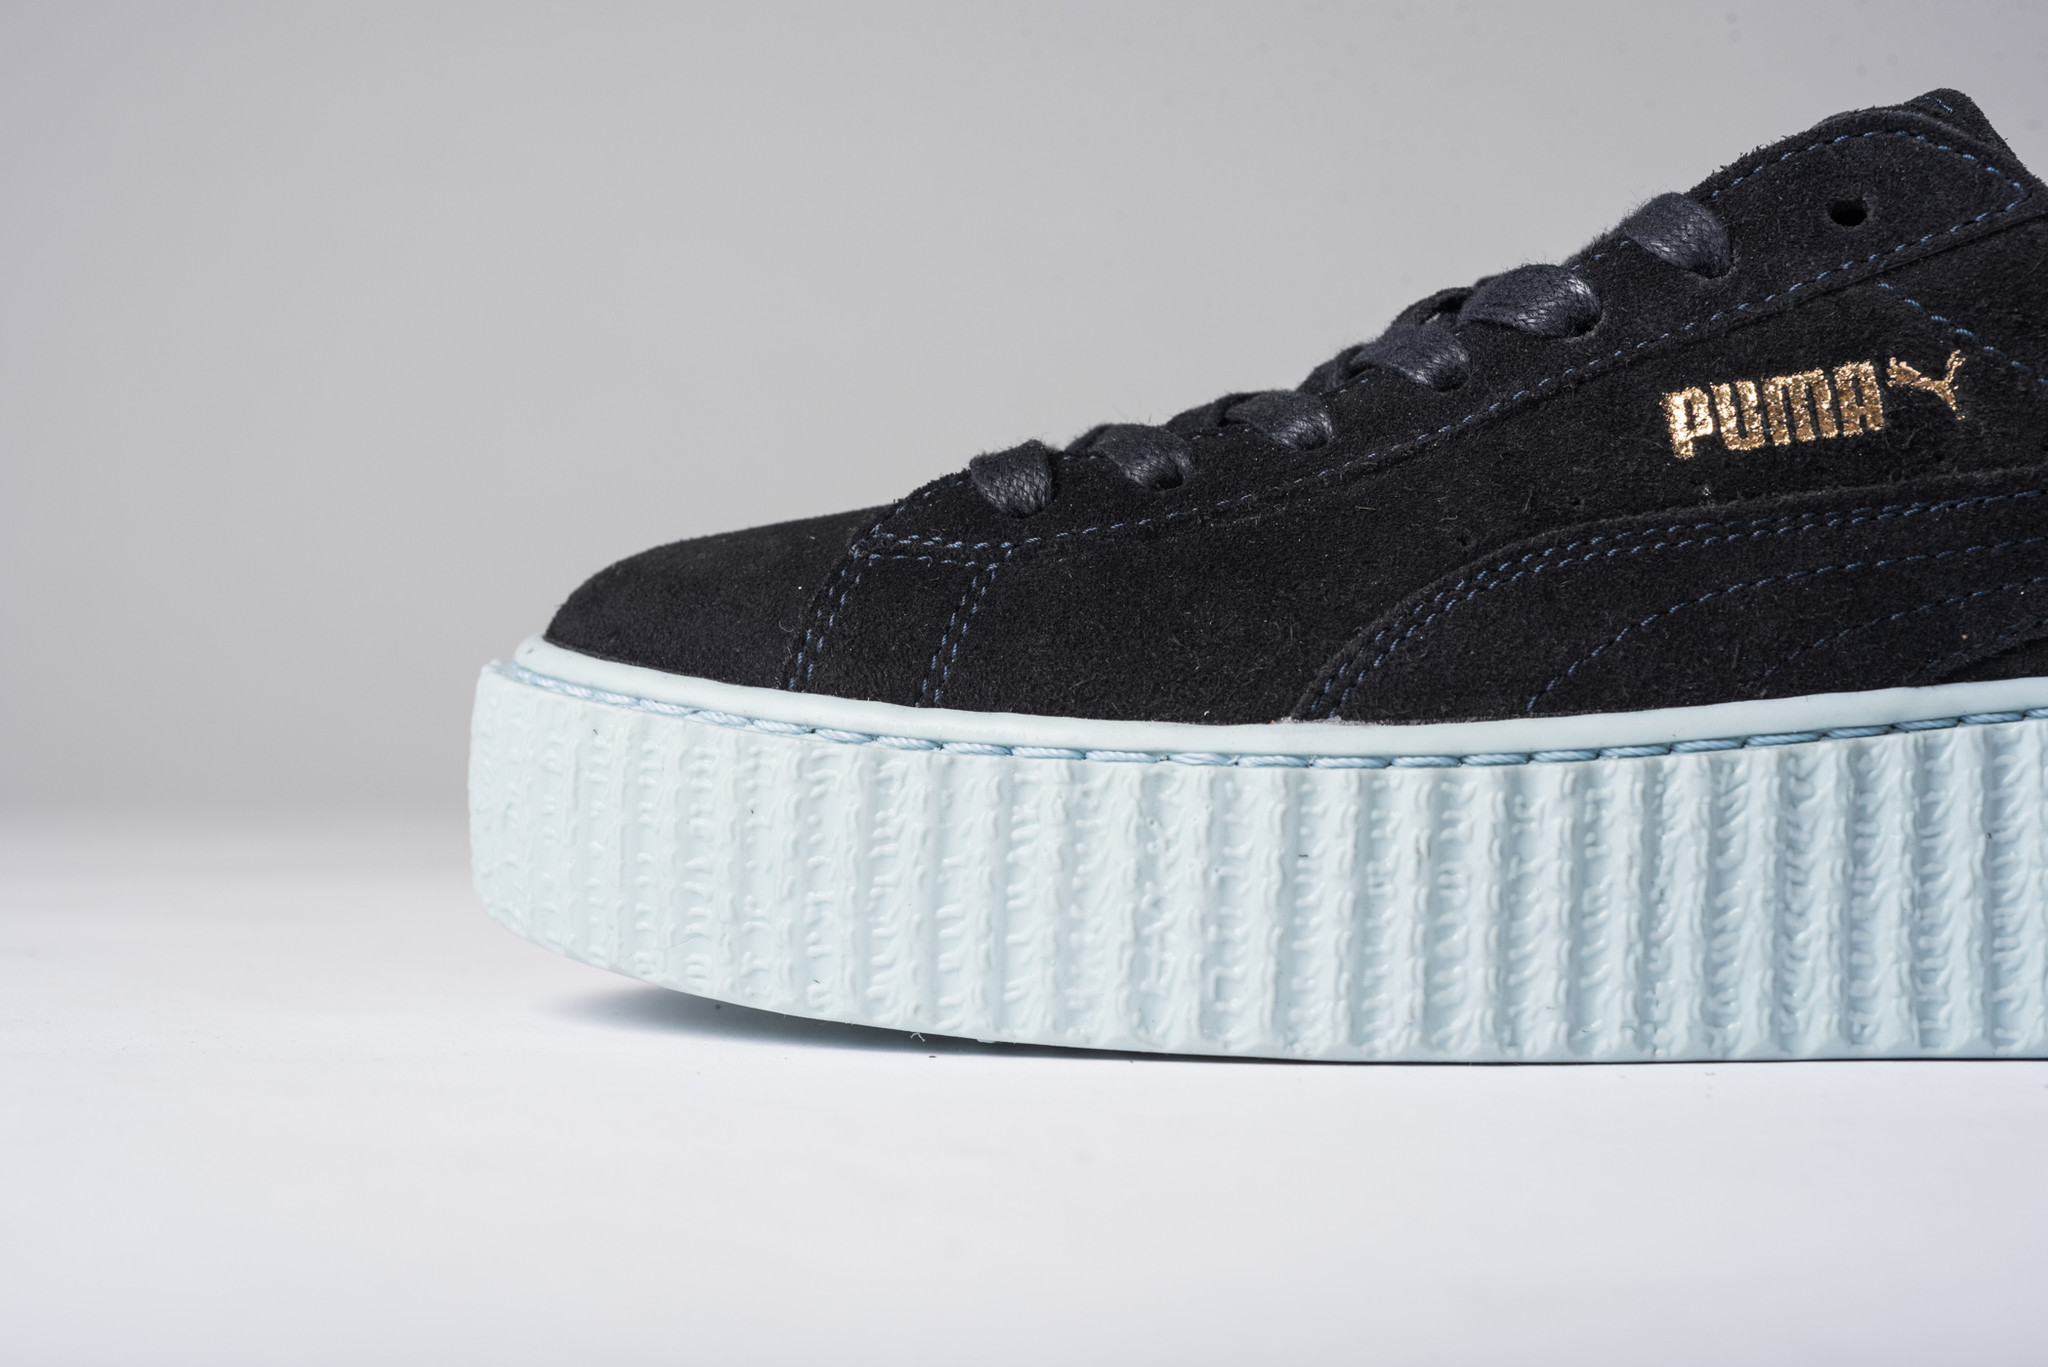 bcac55a9a12 Buy your pair of PUMA x Rihanna WMNS Creeper Coral Suede at Shelflife for  R2